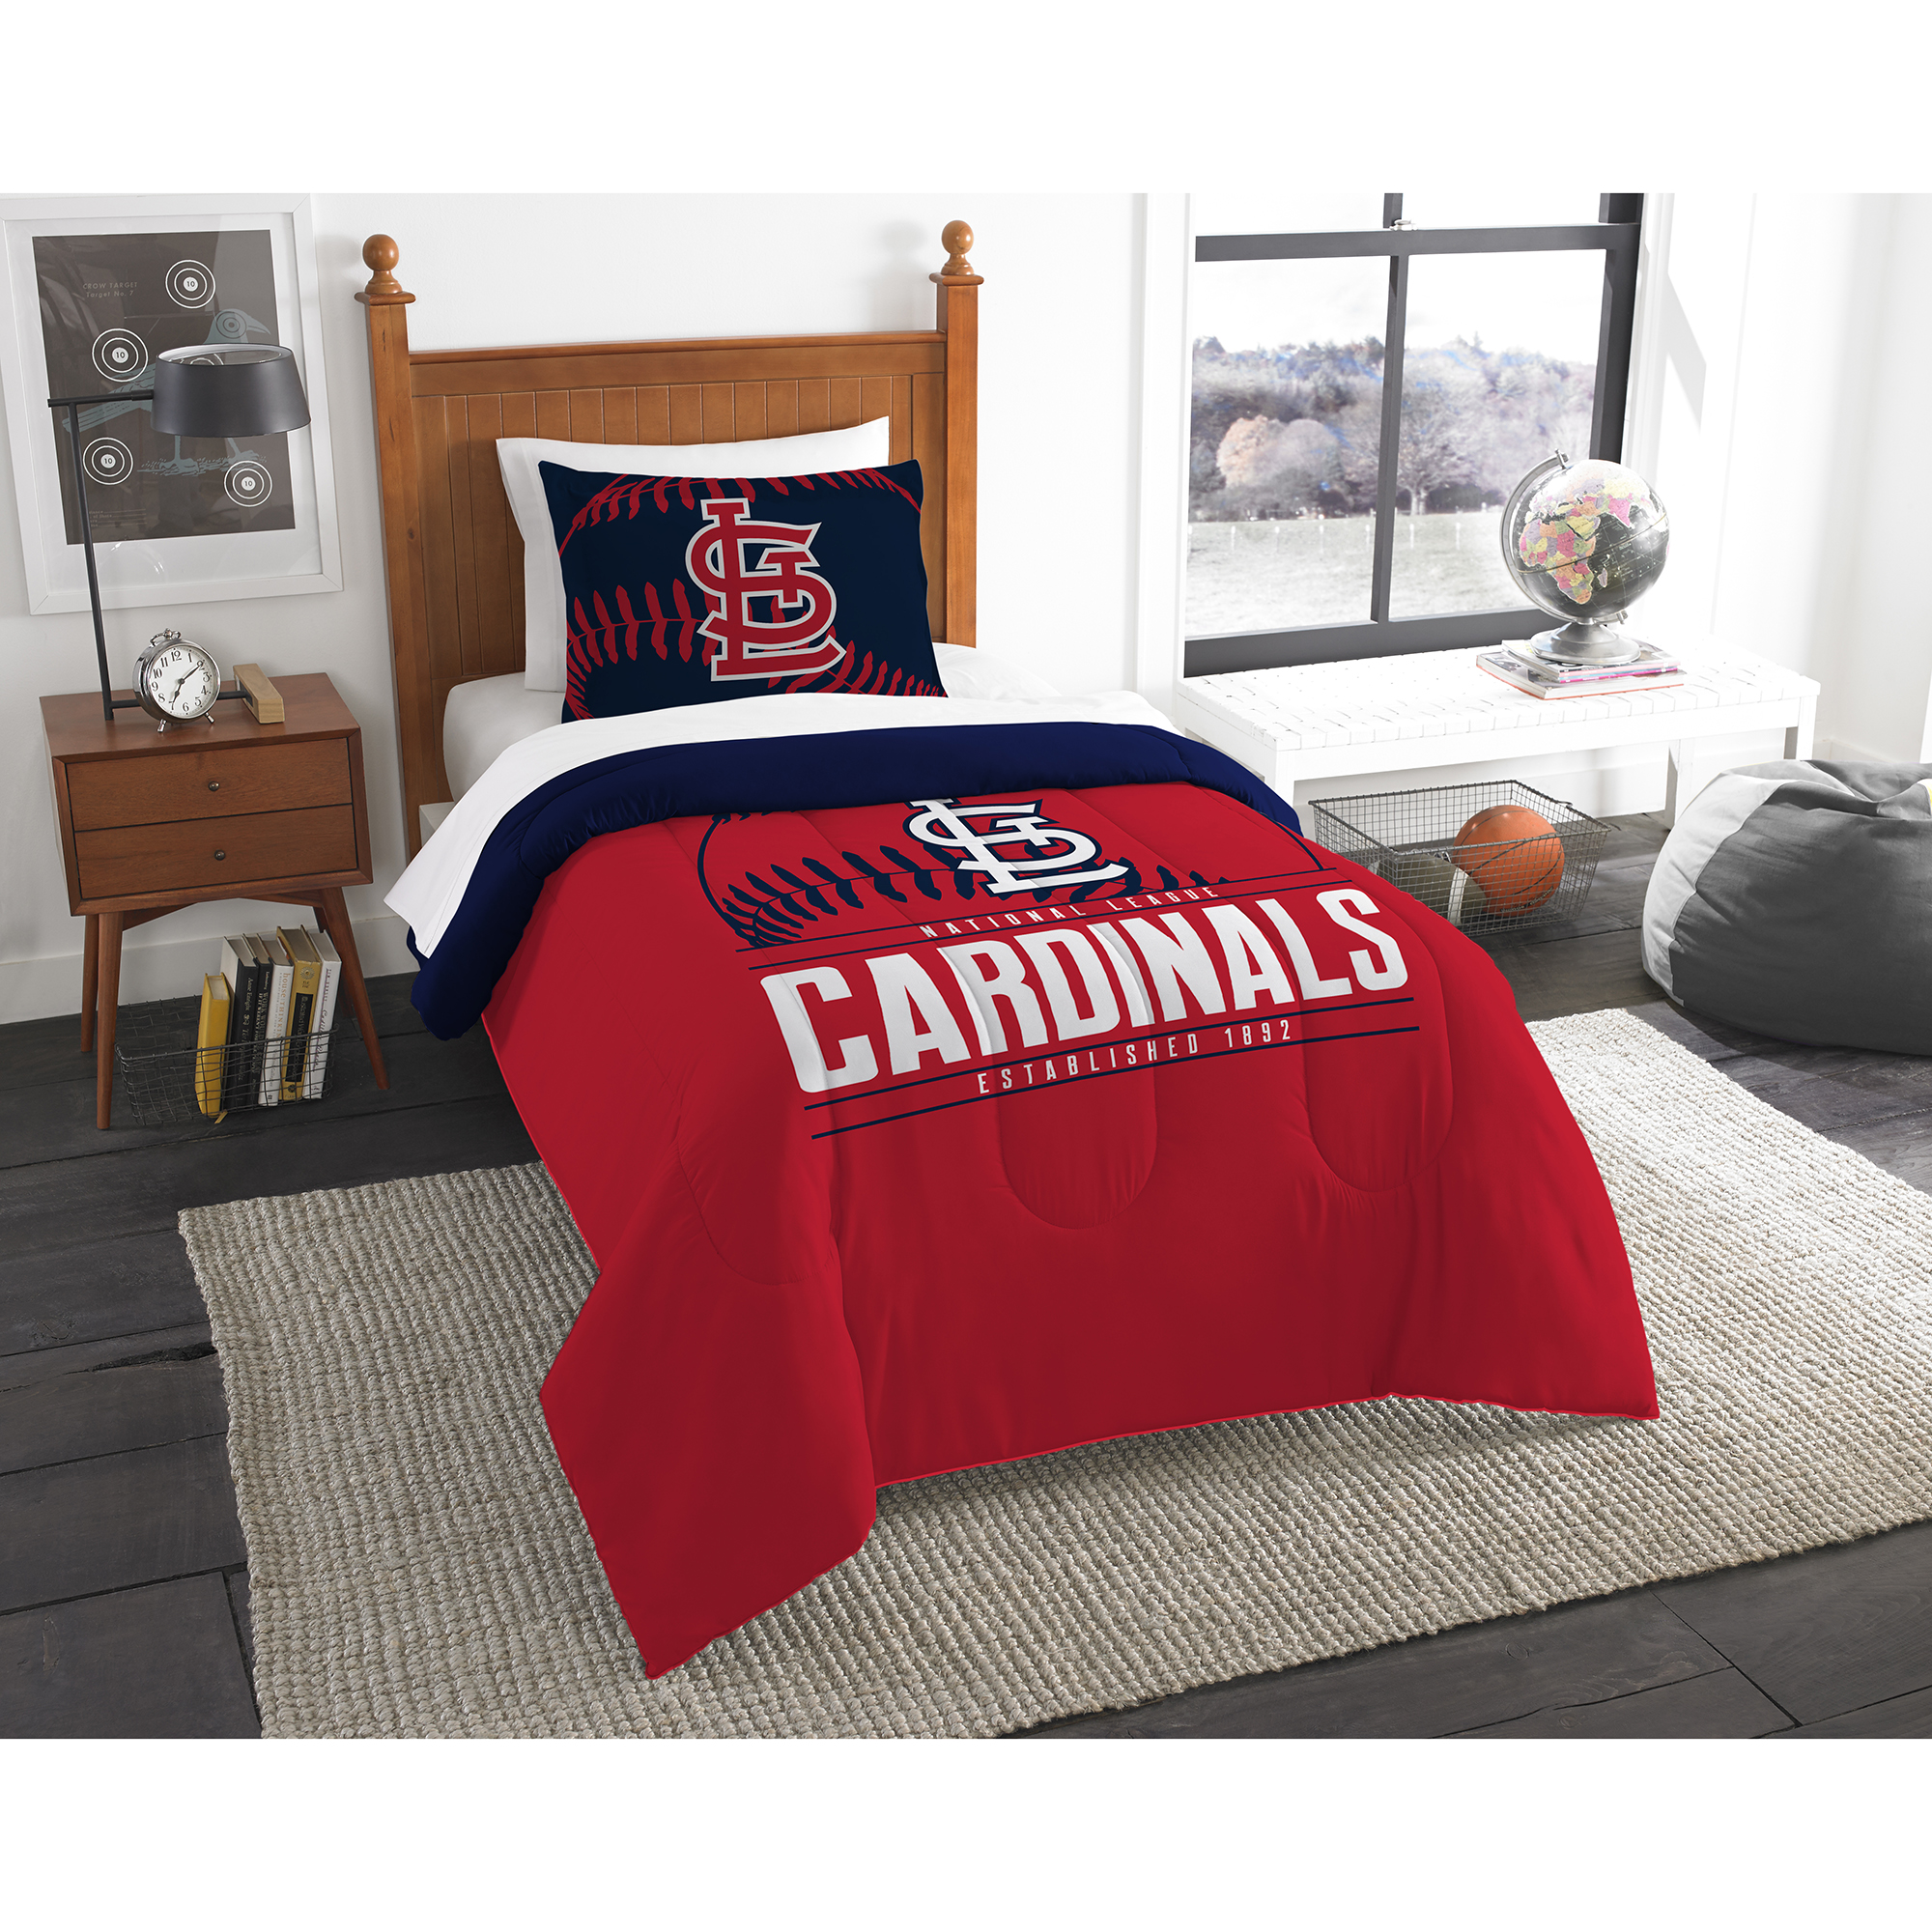 St. Louis Cardinals The Northwest Company Grand Slam Twin Comforter Set - No Size